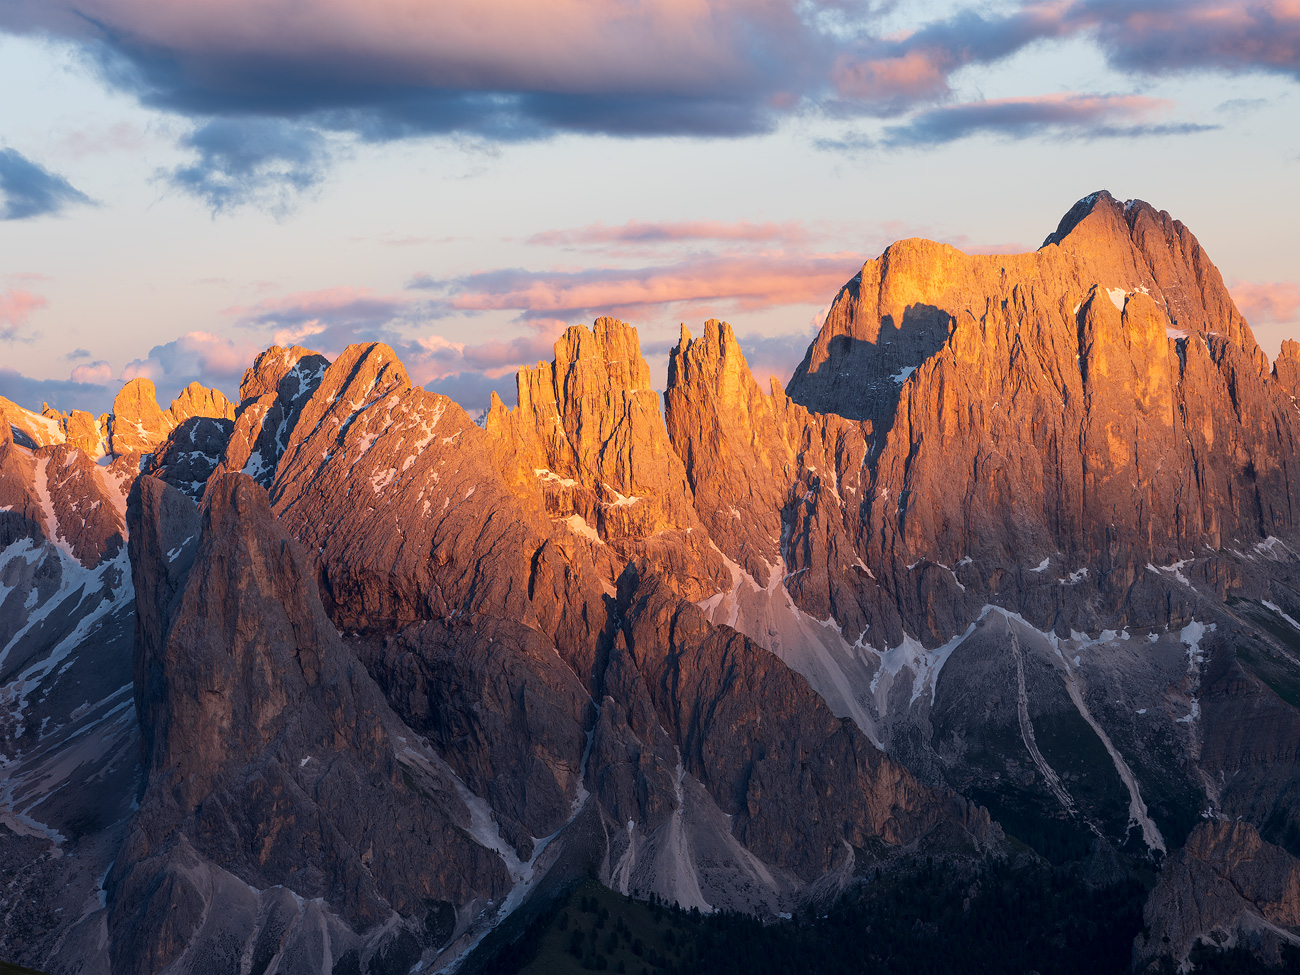 Vajolet Towers, Dolomites, South Tyrol, Italy by Nils Leonhardt